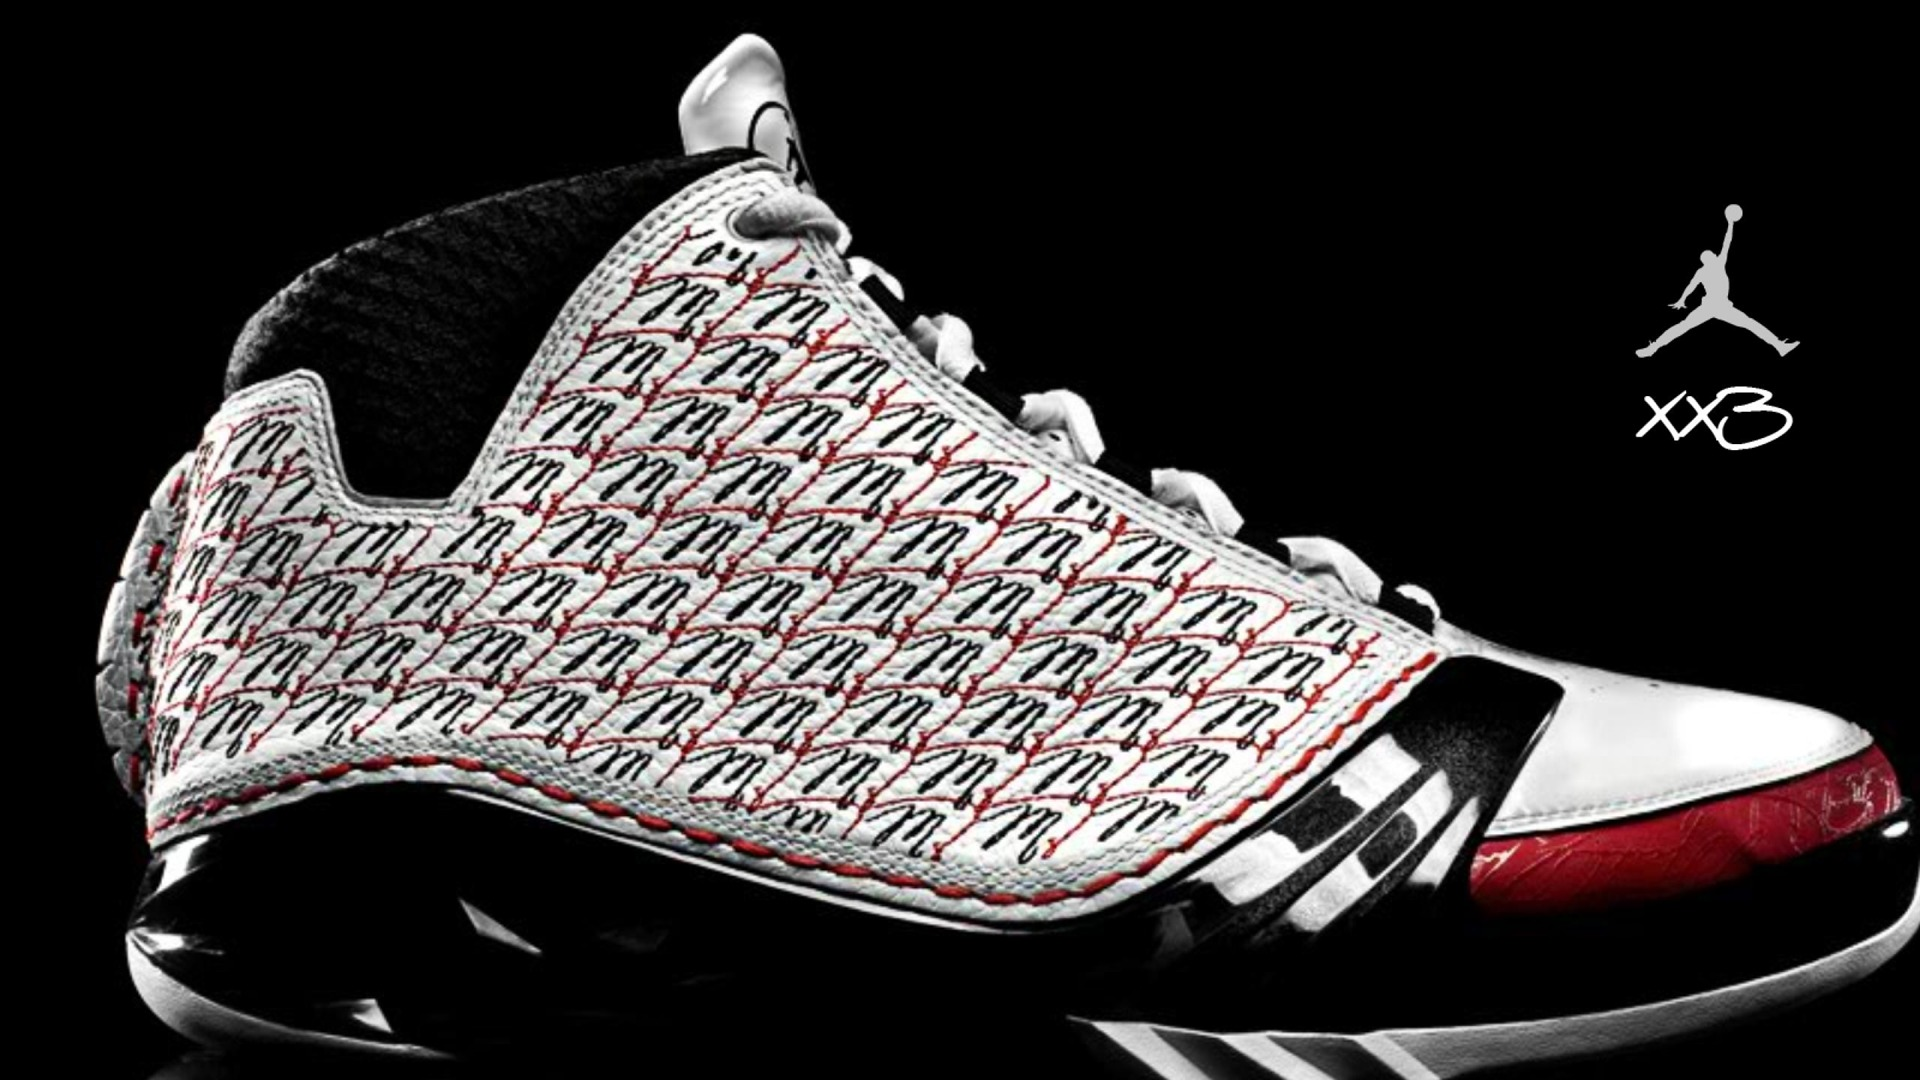 Shoes Wallpaper Free Download